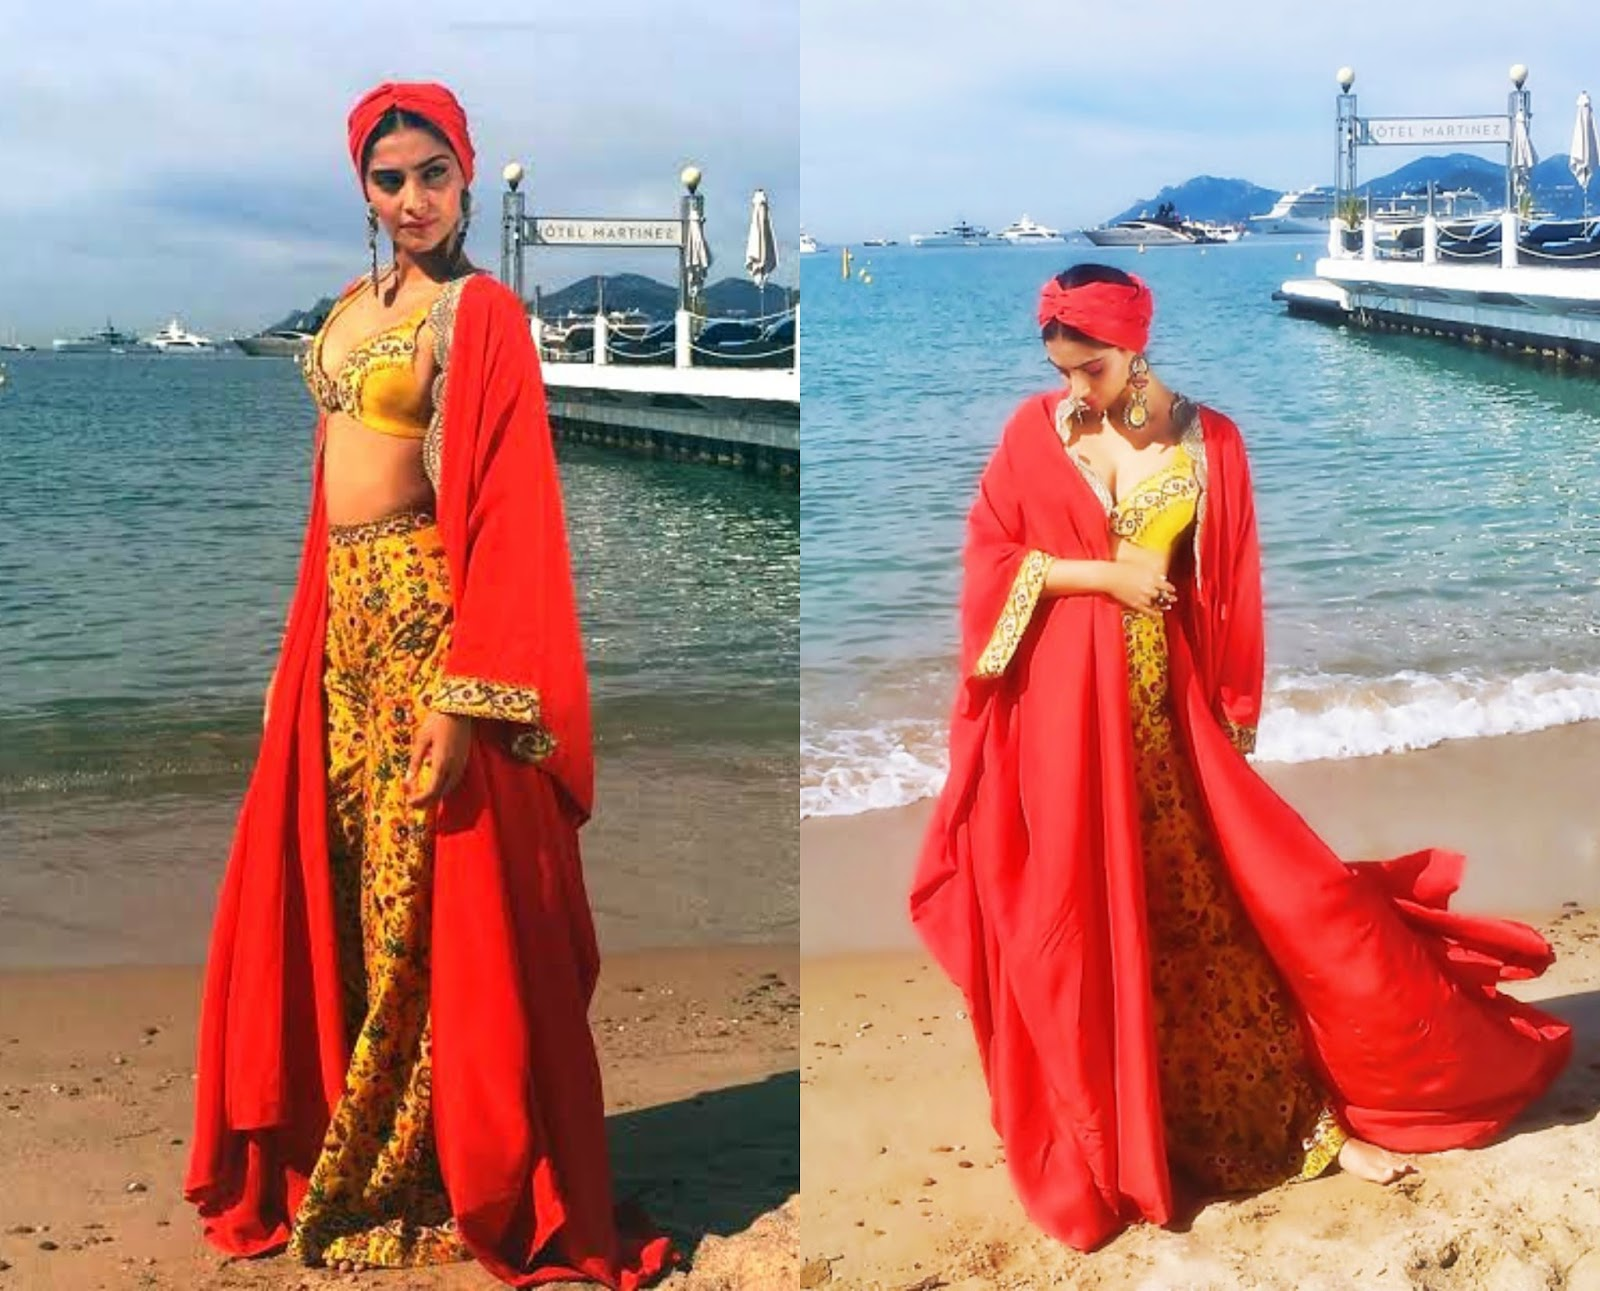 Sonam Kapoor at cannes 2017 , Cannes Film Festival 2017, indian actresses at cannes 2017, who wore what cannes 2017